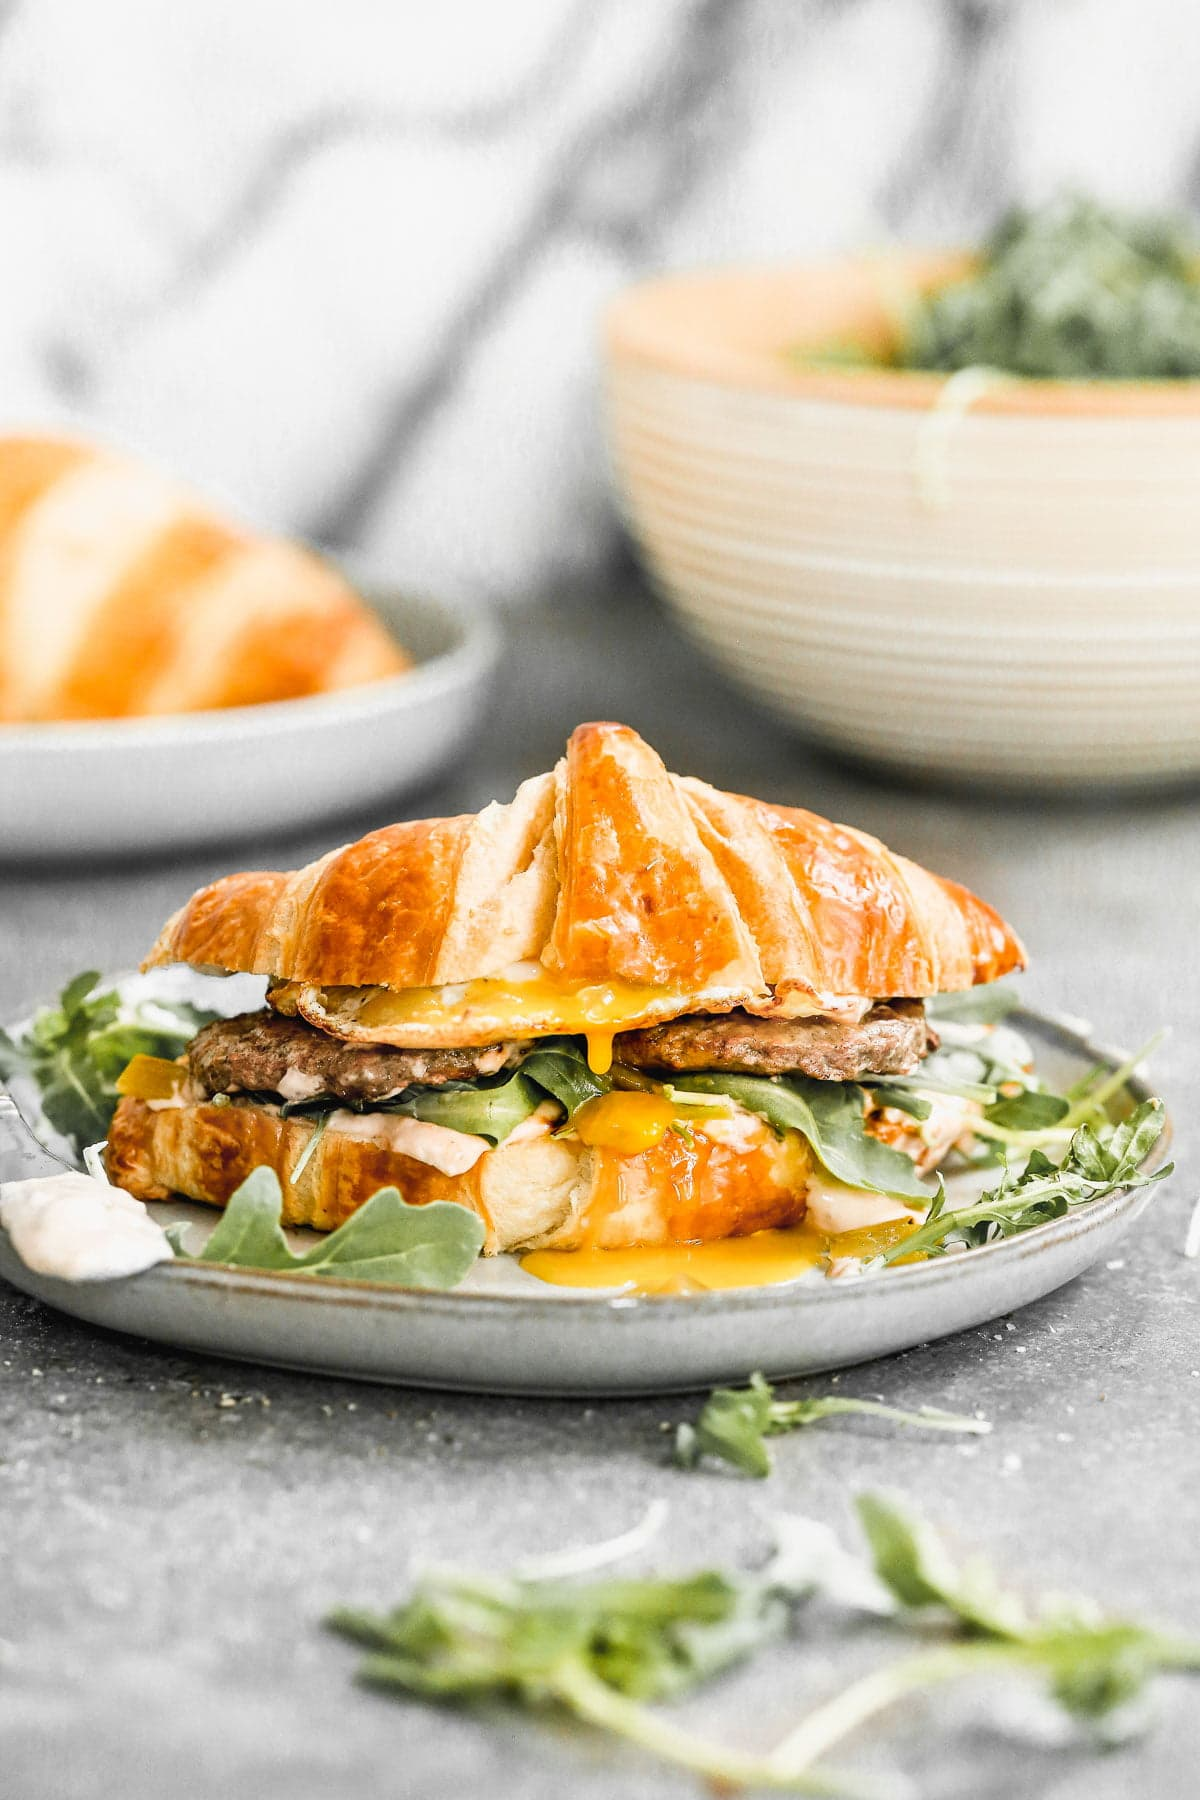 Calling all breakfast lovers! Our Croissant Breakfast Sandwich is slathered with a spicy salsa cream cheese, topped with smoky green chiles, peppery arugula, salty Turkey Sausage, and of course, a drippy over-easy egg. Hearty, messy, and oh-so delicious.